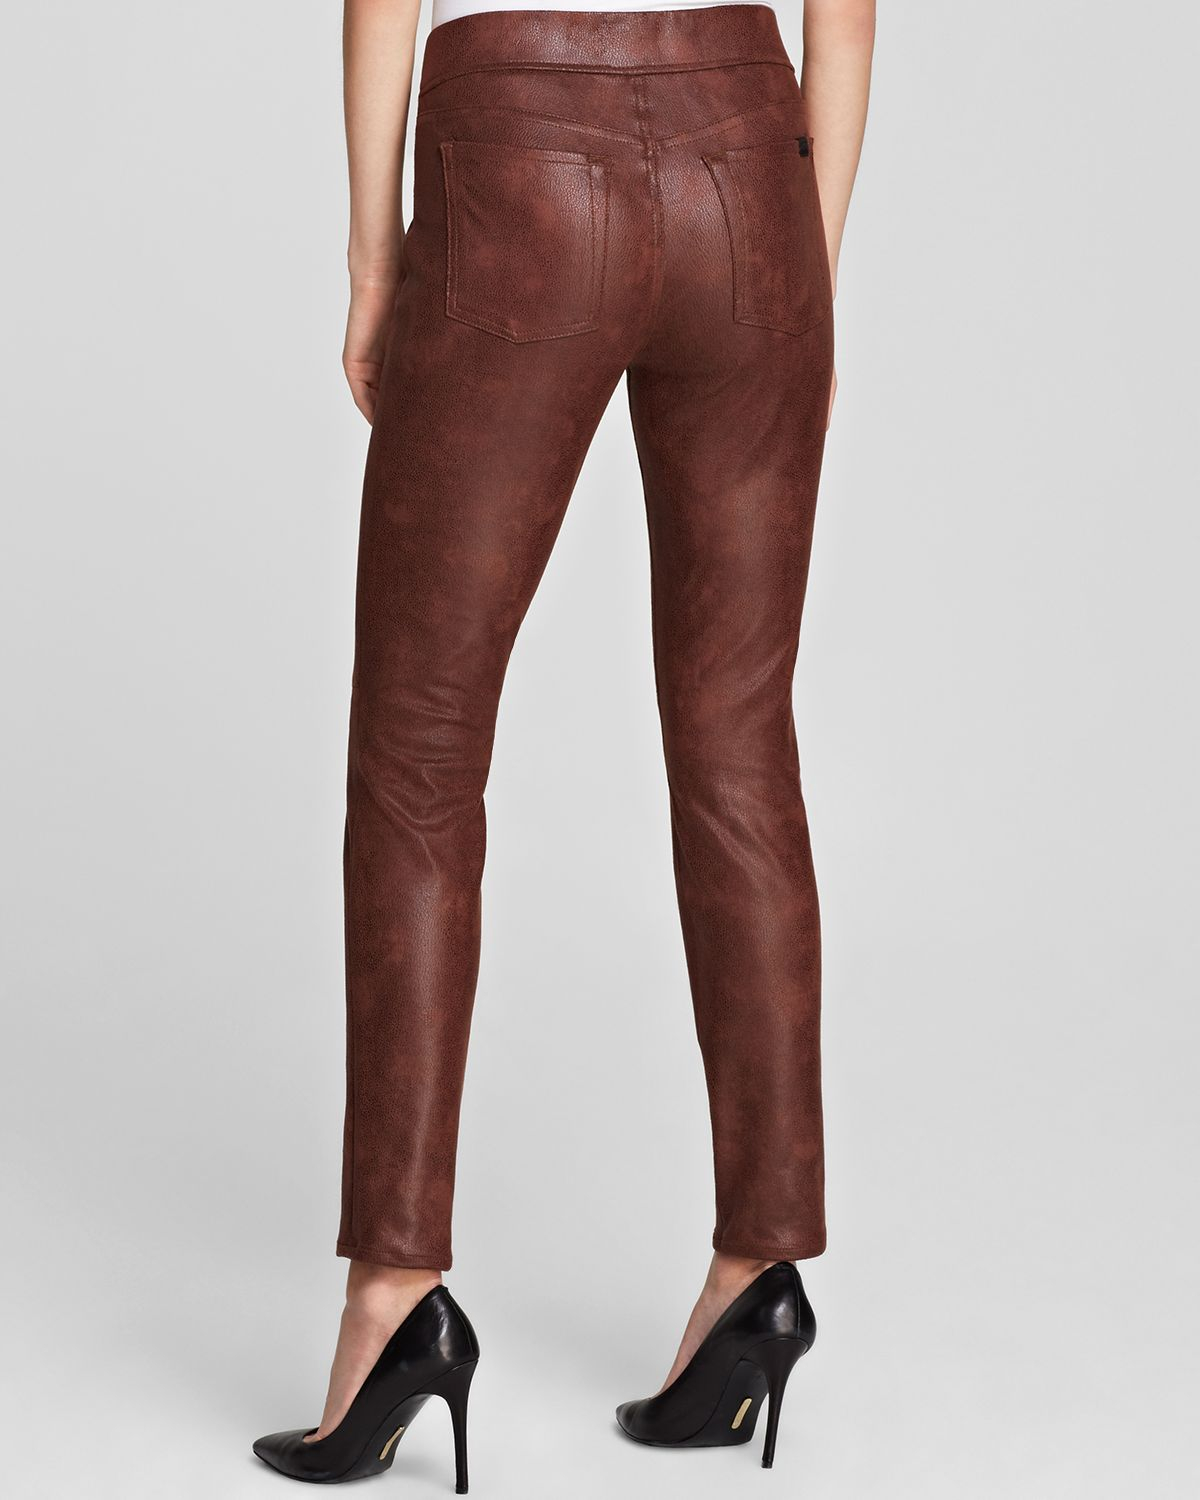 Beautiful Alfa Img  Showing Gt Womens Brown Leather Pants